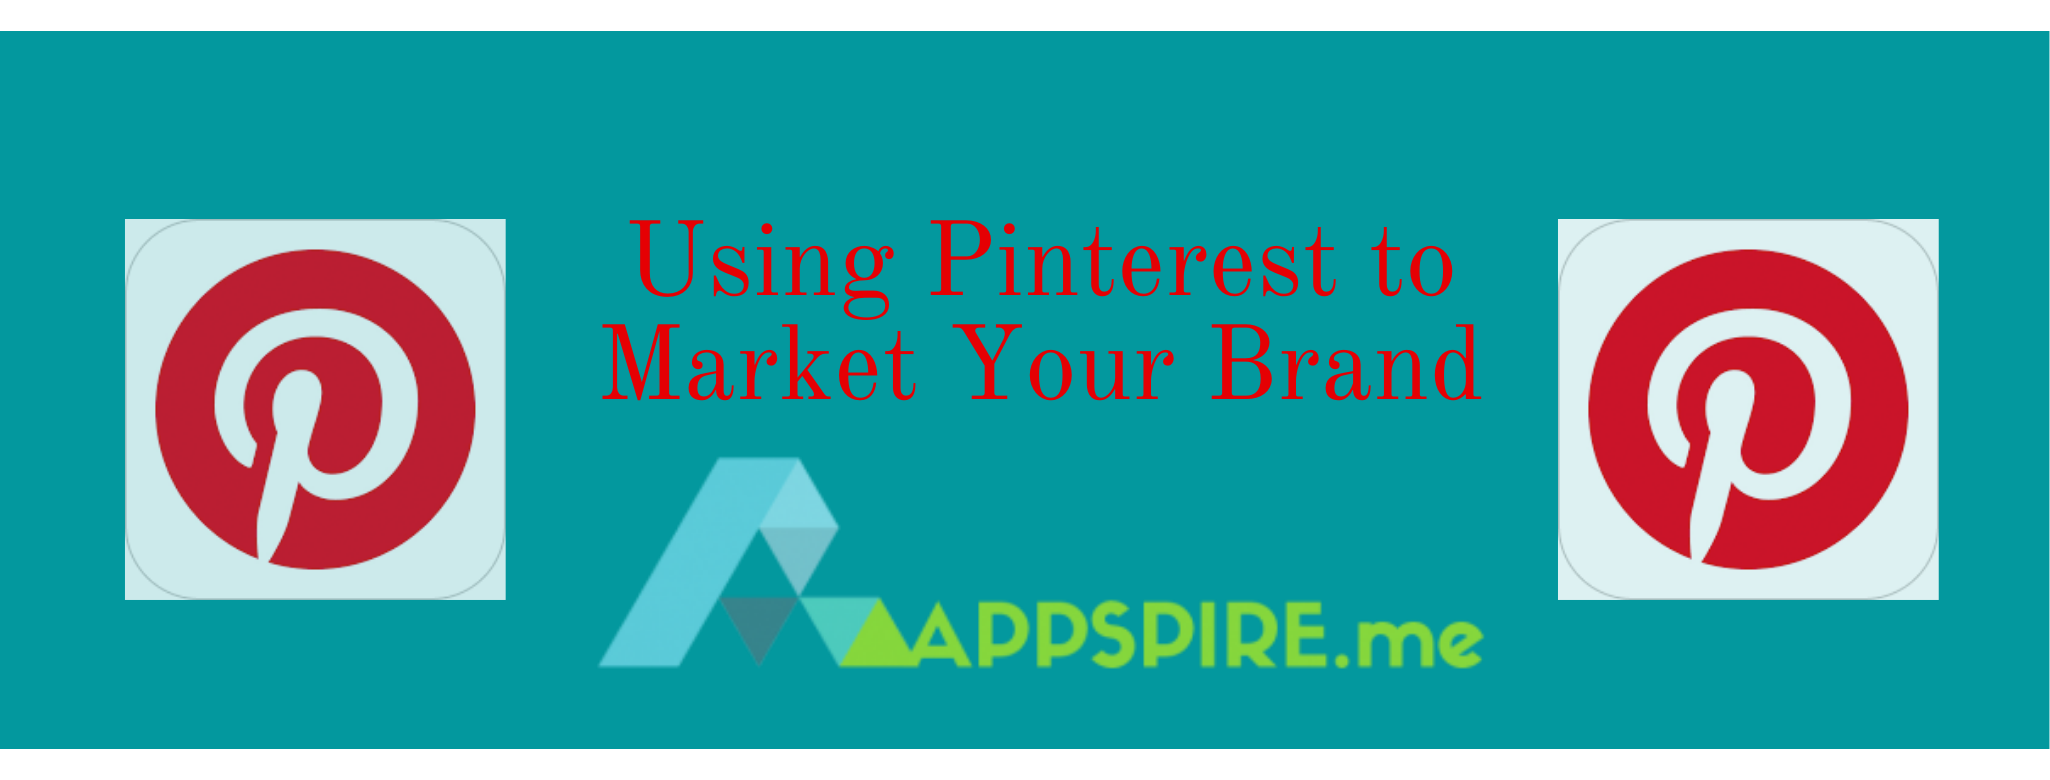 Tips On Using Pinterest To Market Your Brand